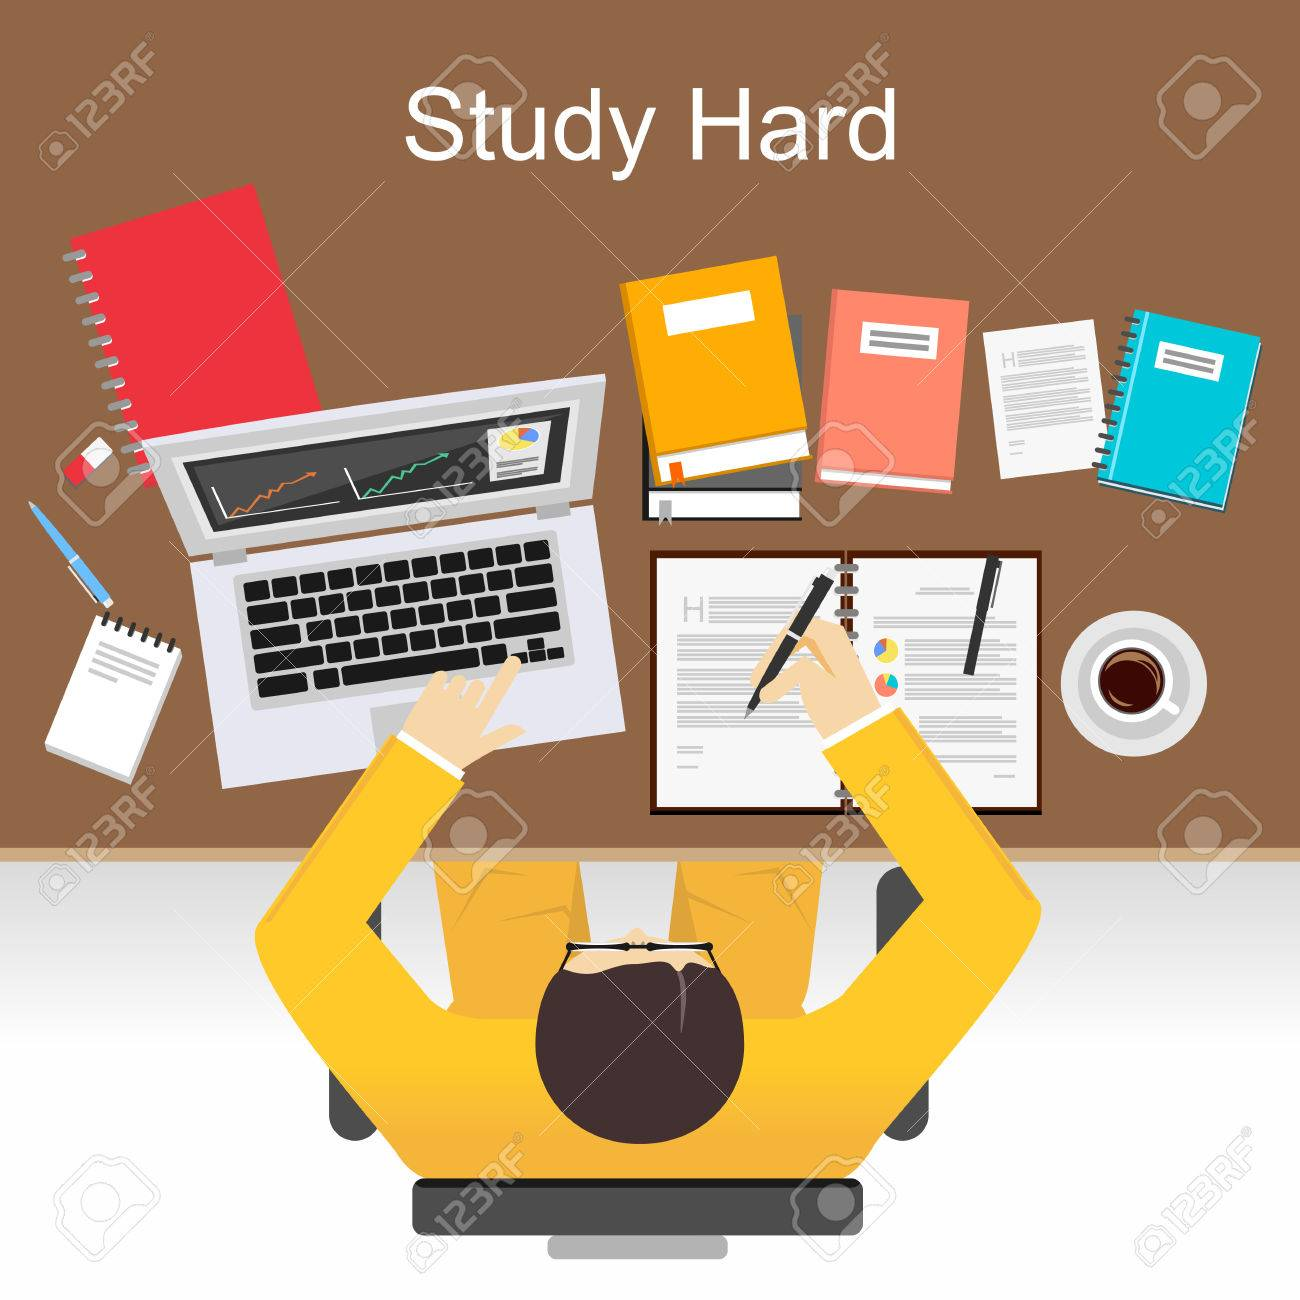 study hard concept illustration flat design illustration concepts study hard concept illustration flat design illustration concepts for study hard working research